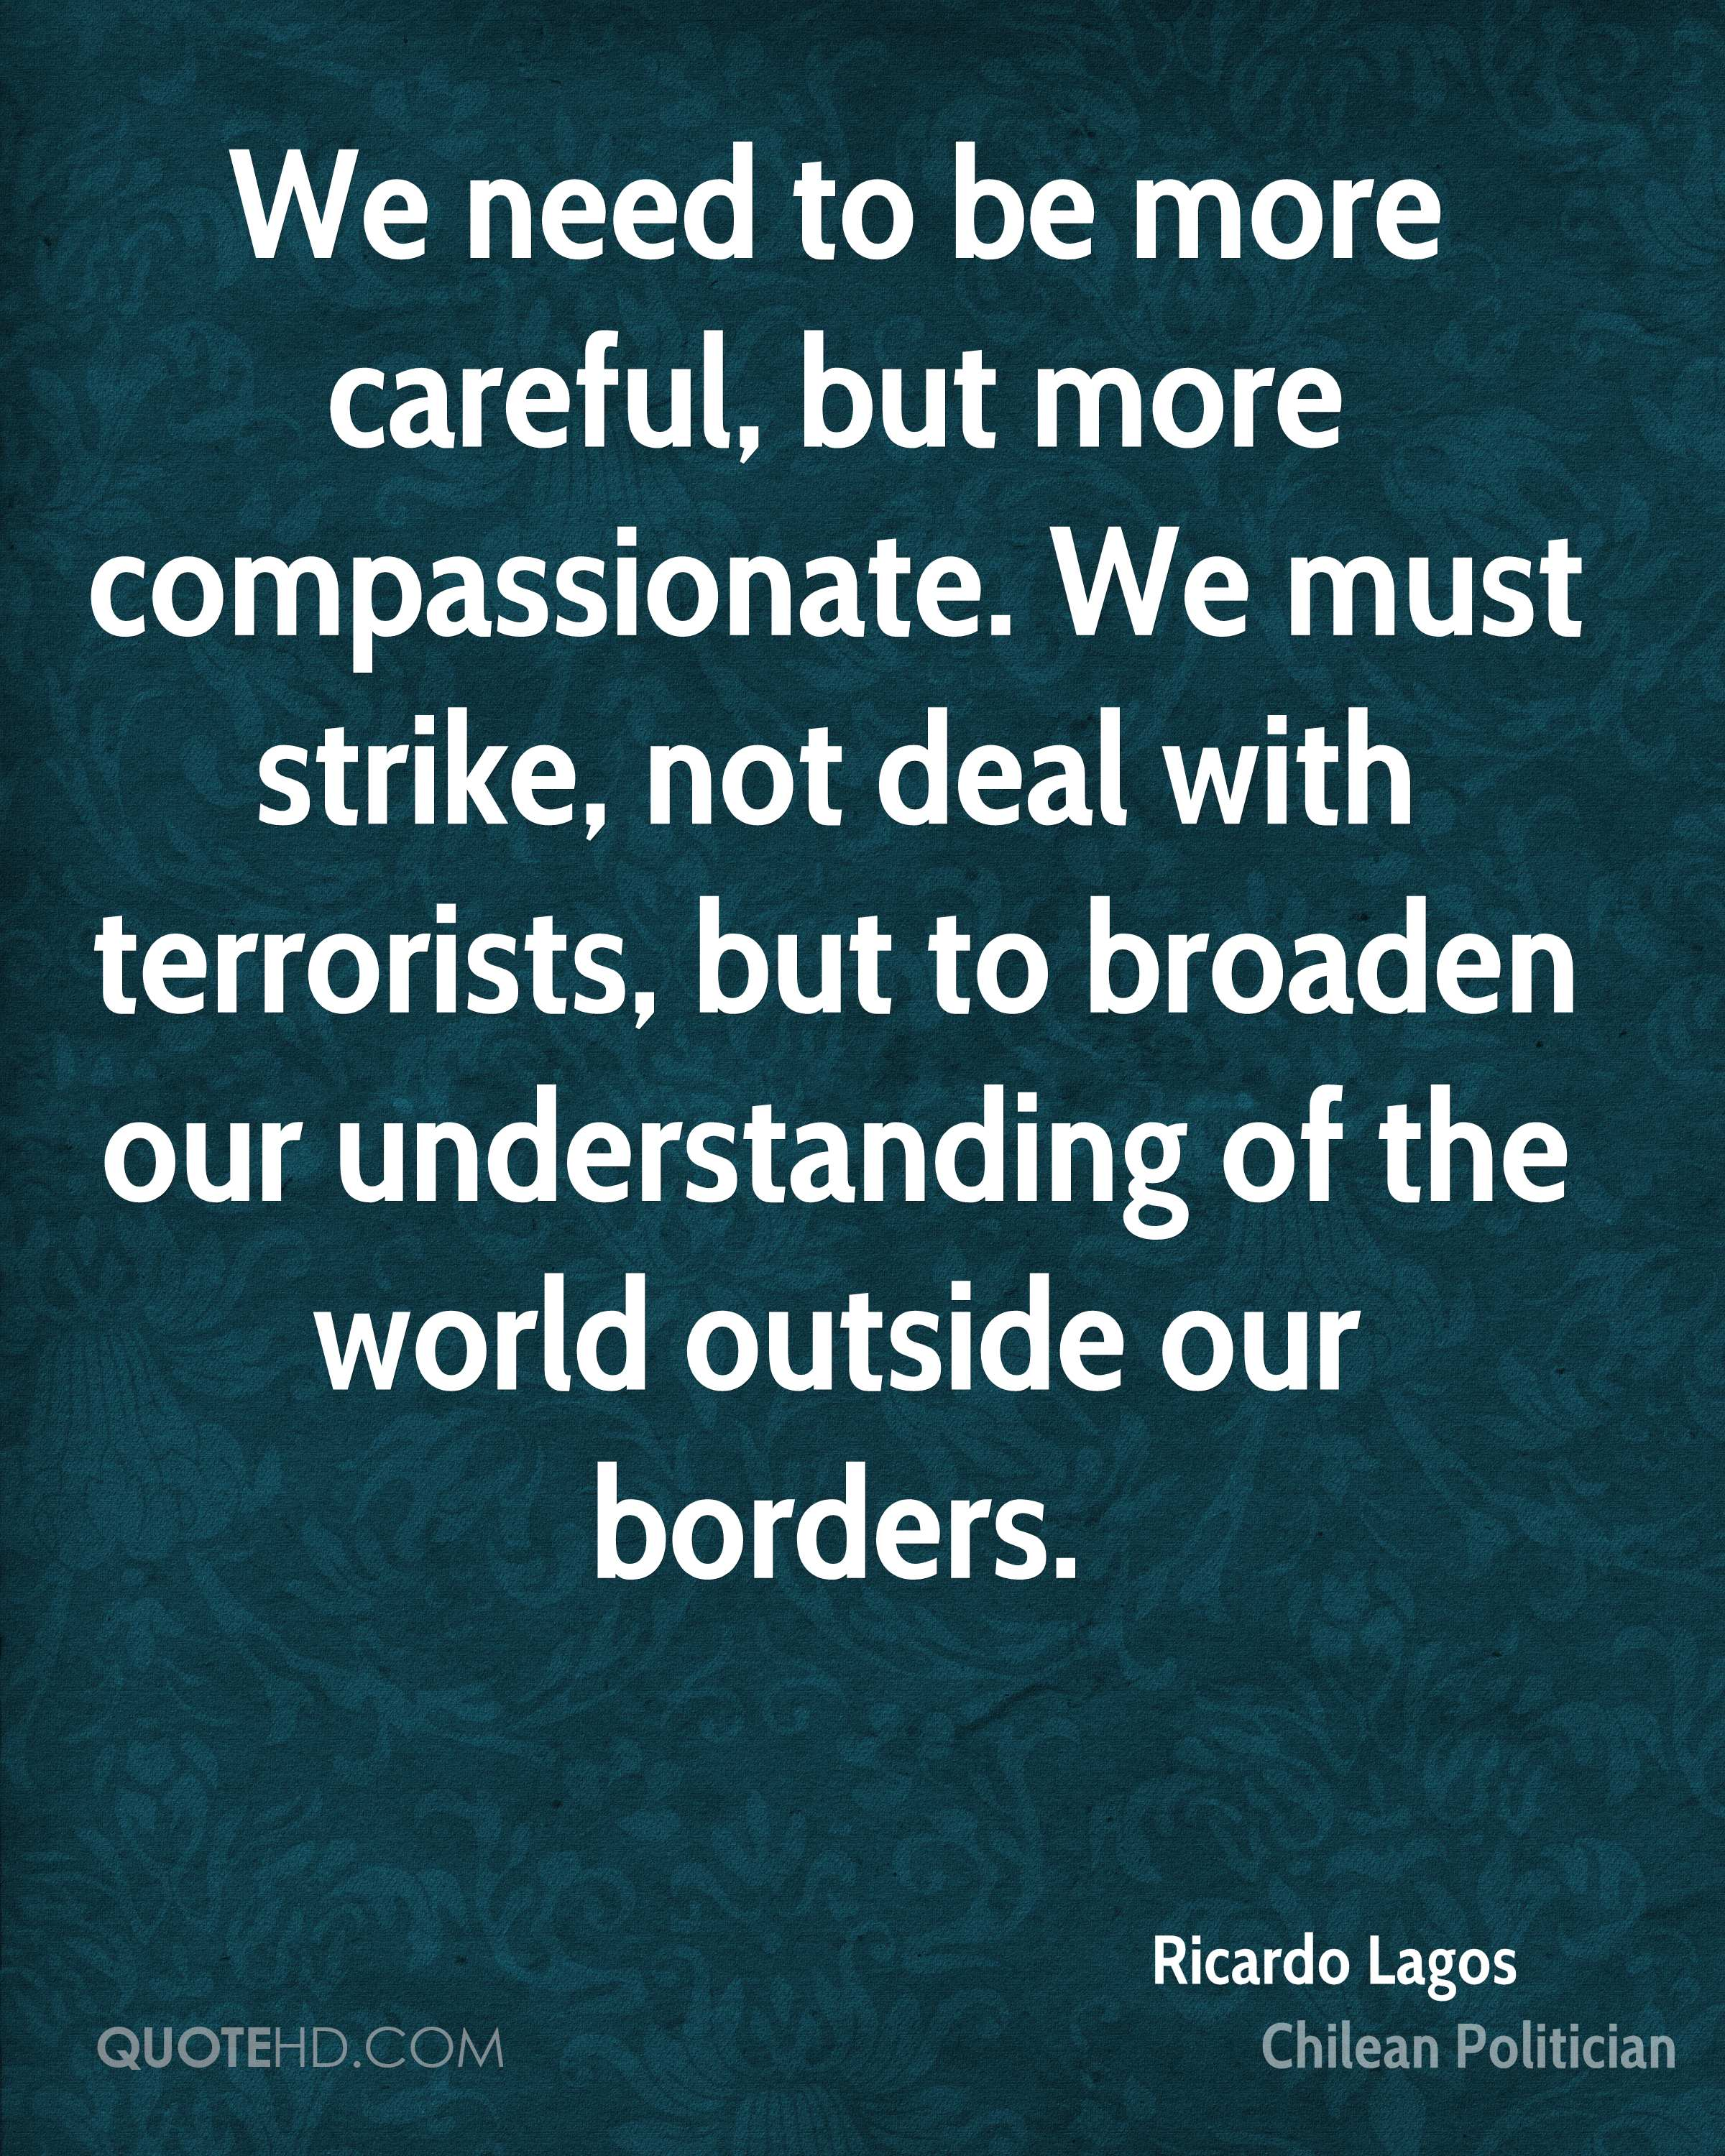 We need to be more careful, but more compassionate. We must strike, not deal with terrorists, but to broaden our understanding of the world outside our borders.